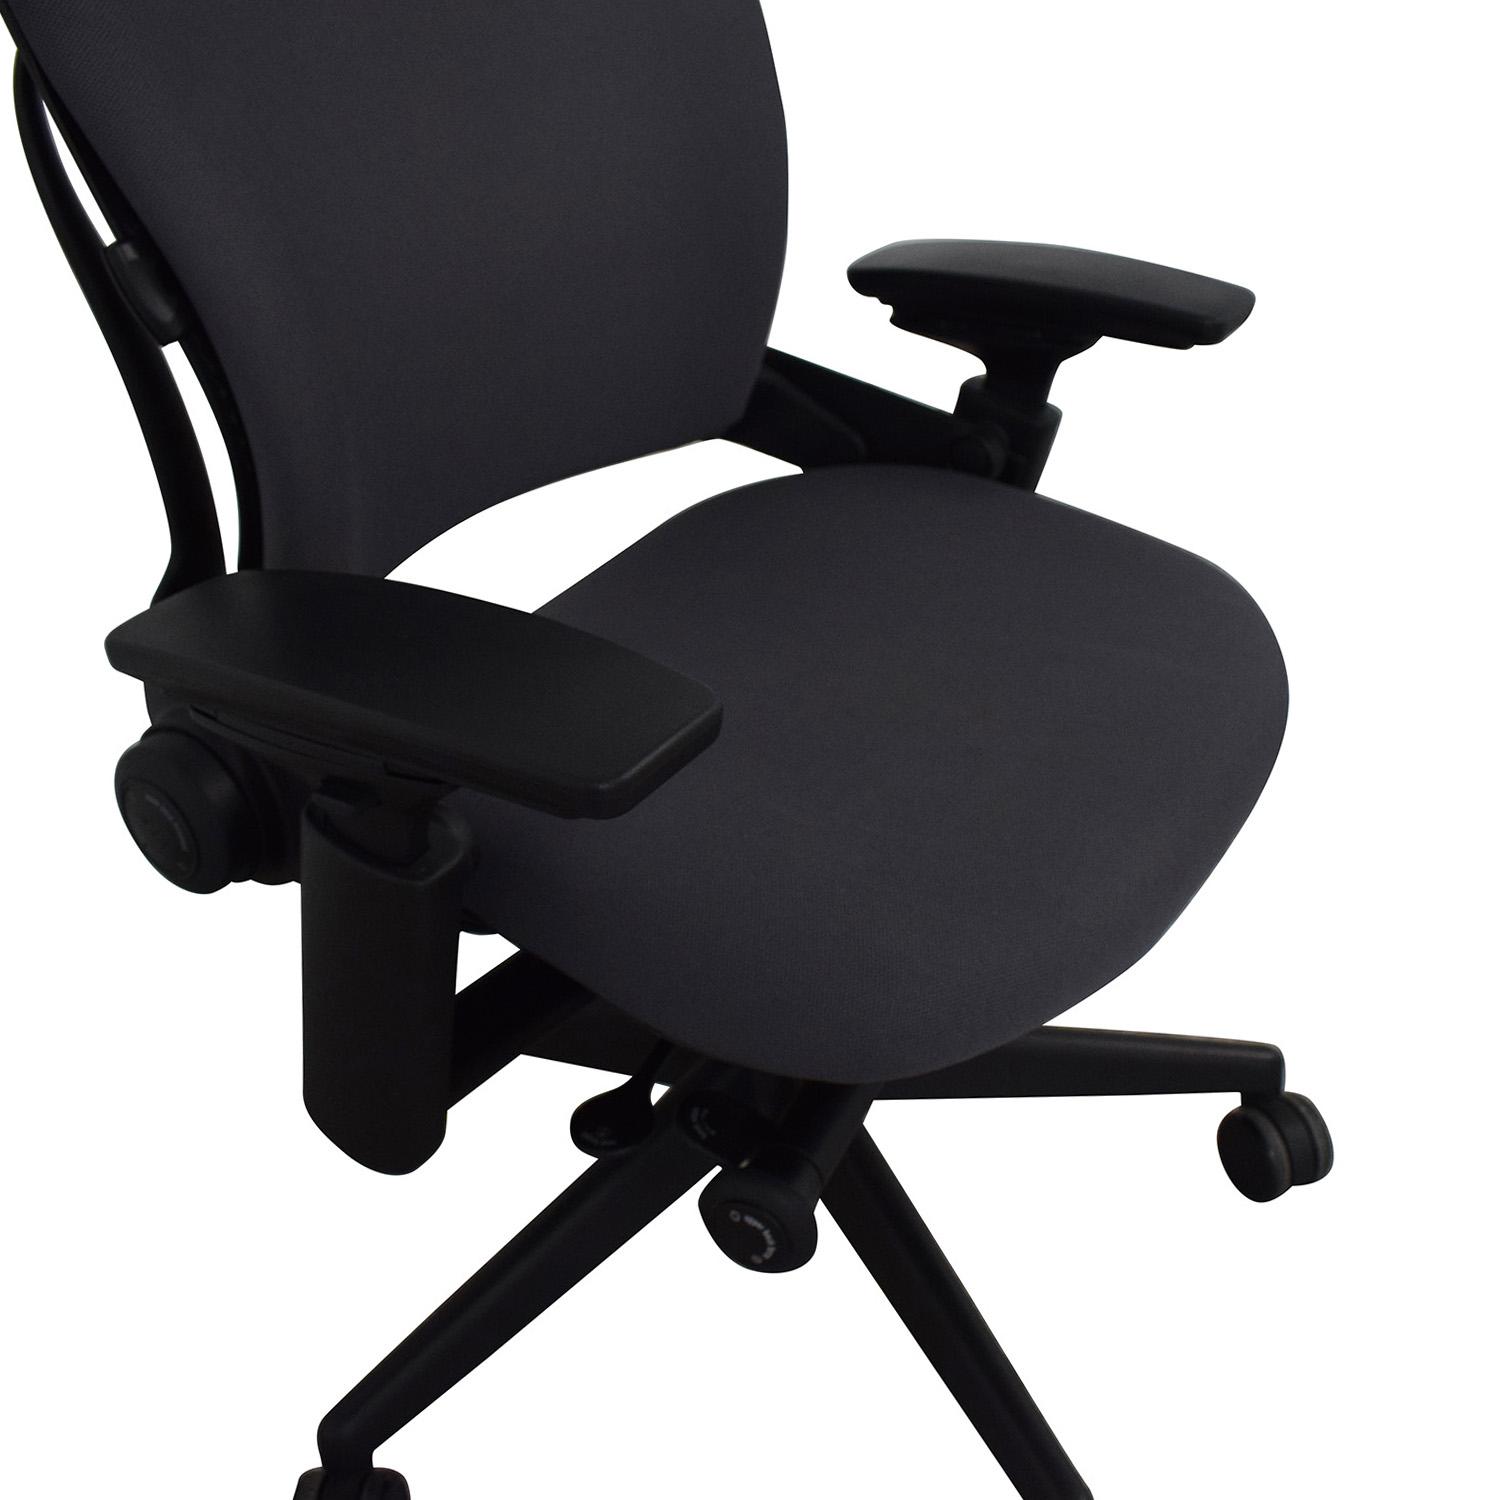 Steelcase Steelcase Leap V2 Office Chair second hand